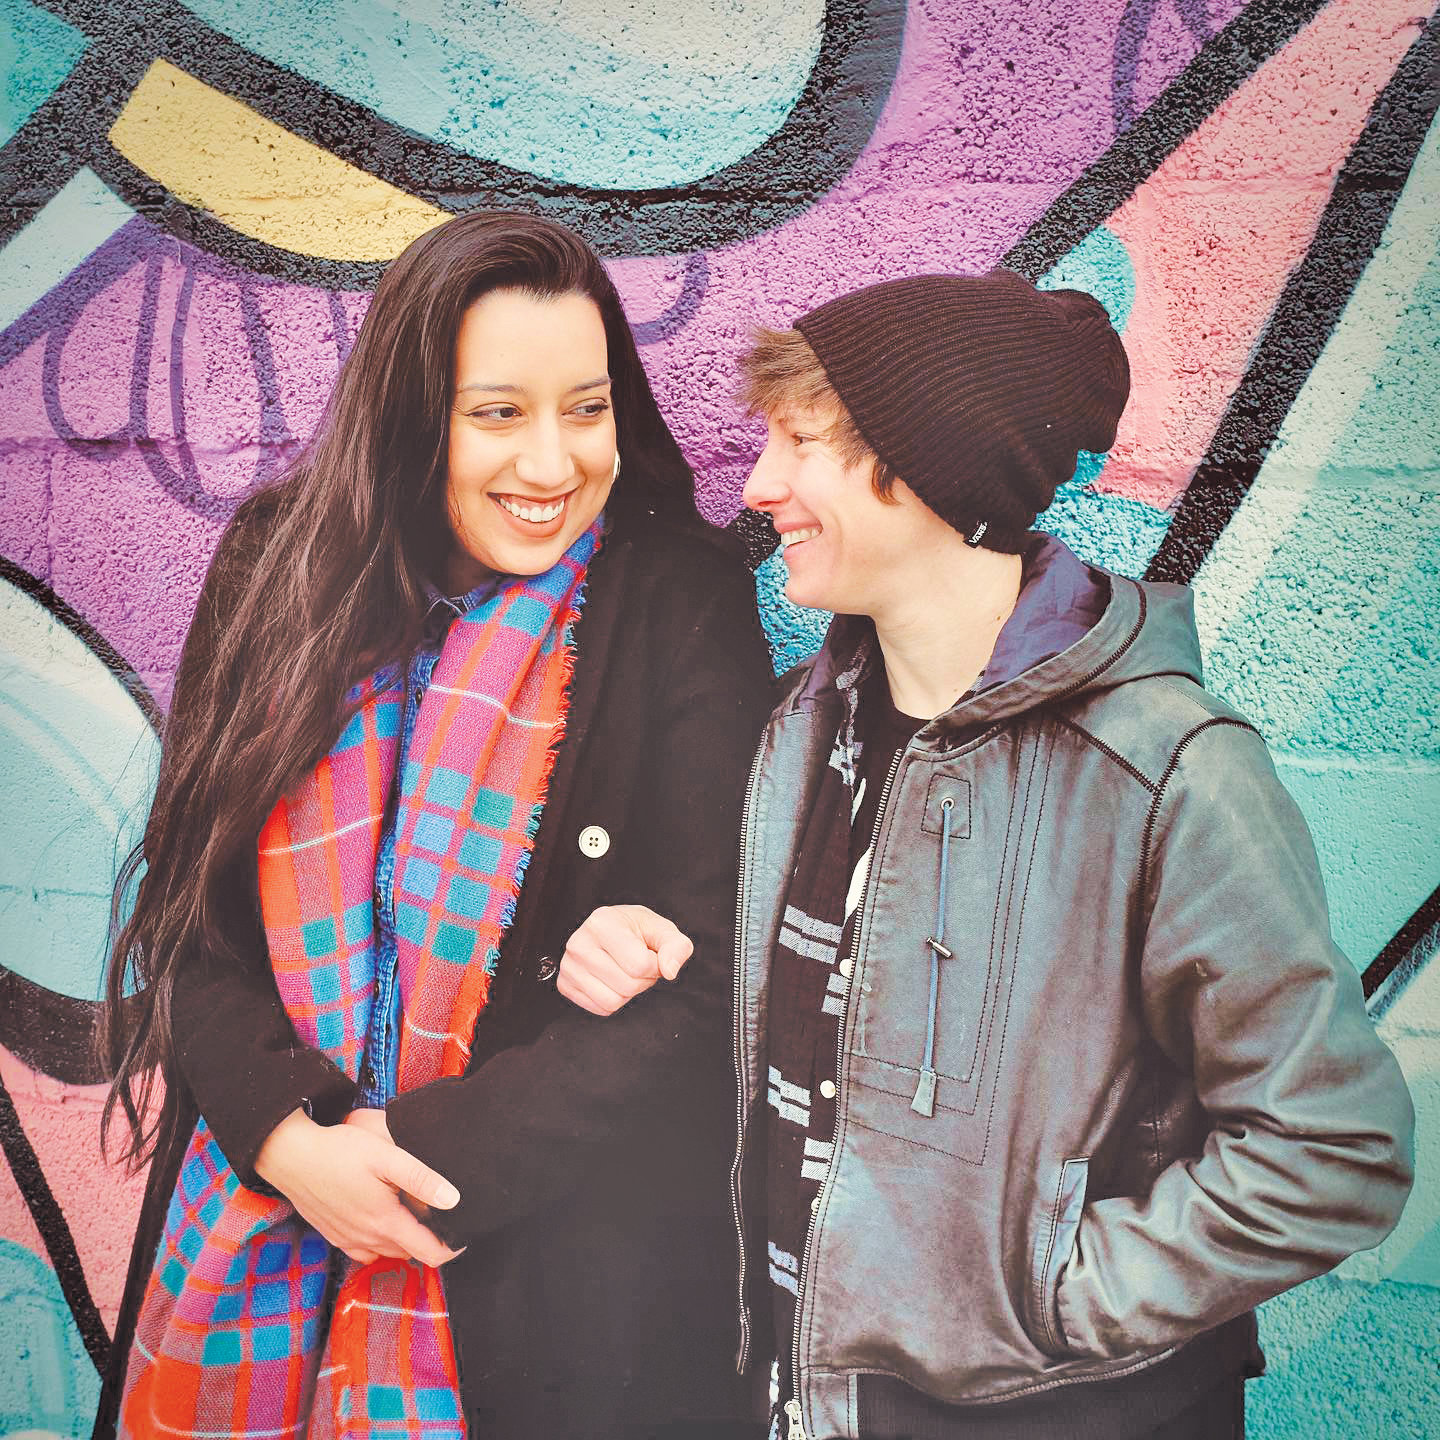 Isabella Copeland and Kyle Holsinger-Johnson are the co-creators of Queers Who Brunch.